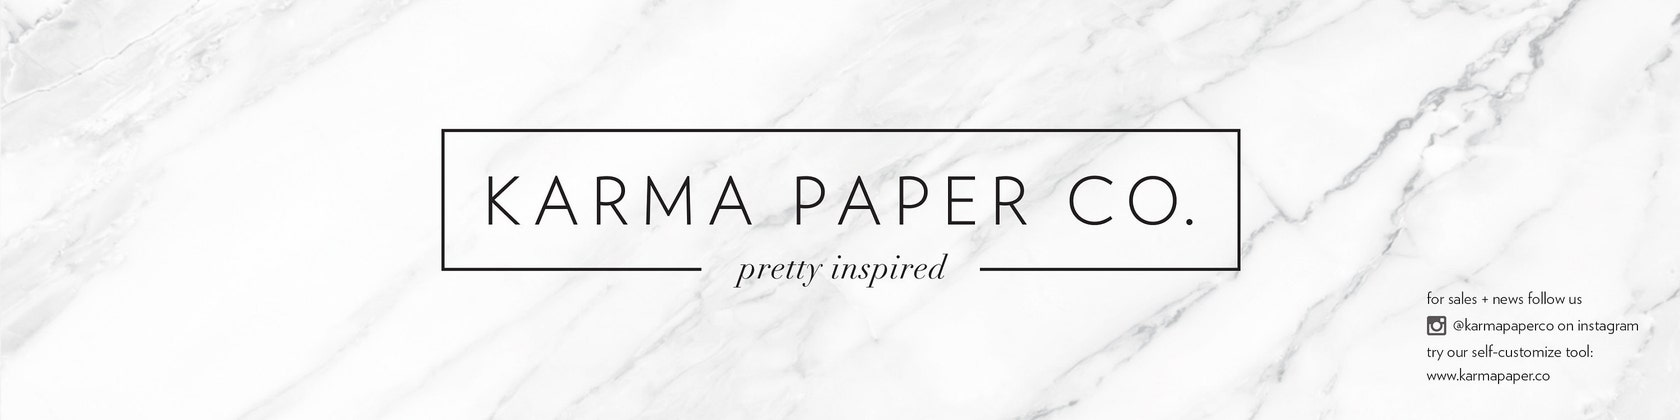 Personalized Paper & Home Goods von KarmaPaperCo auf Etsy